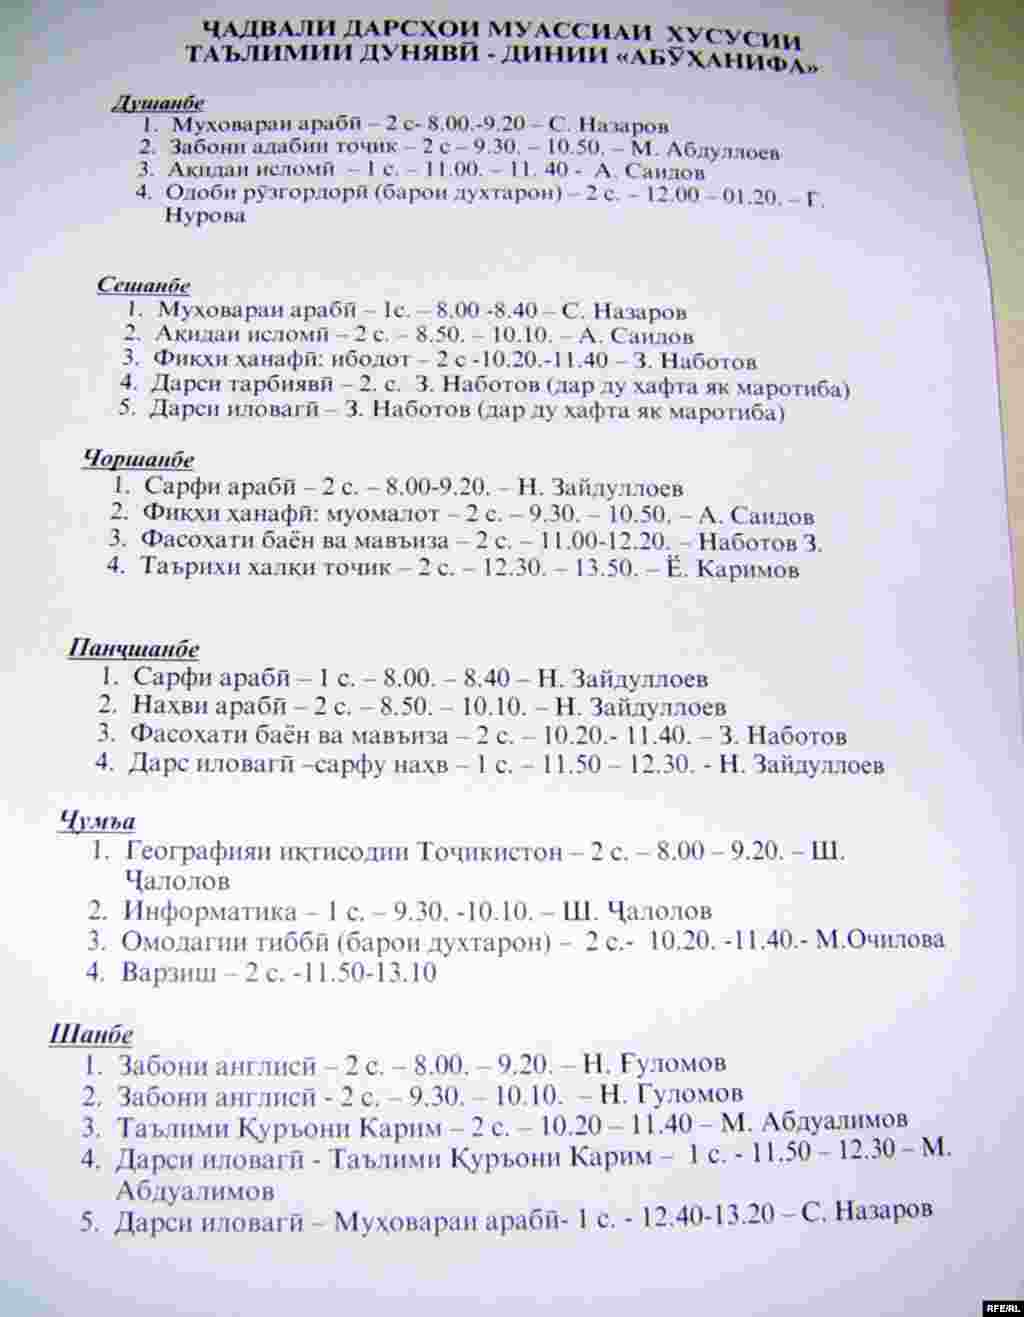 Tajikistan - Schedule of lessons in new religion-secular school opened recently in Dushanbe, 05May2009